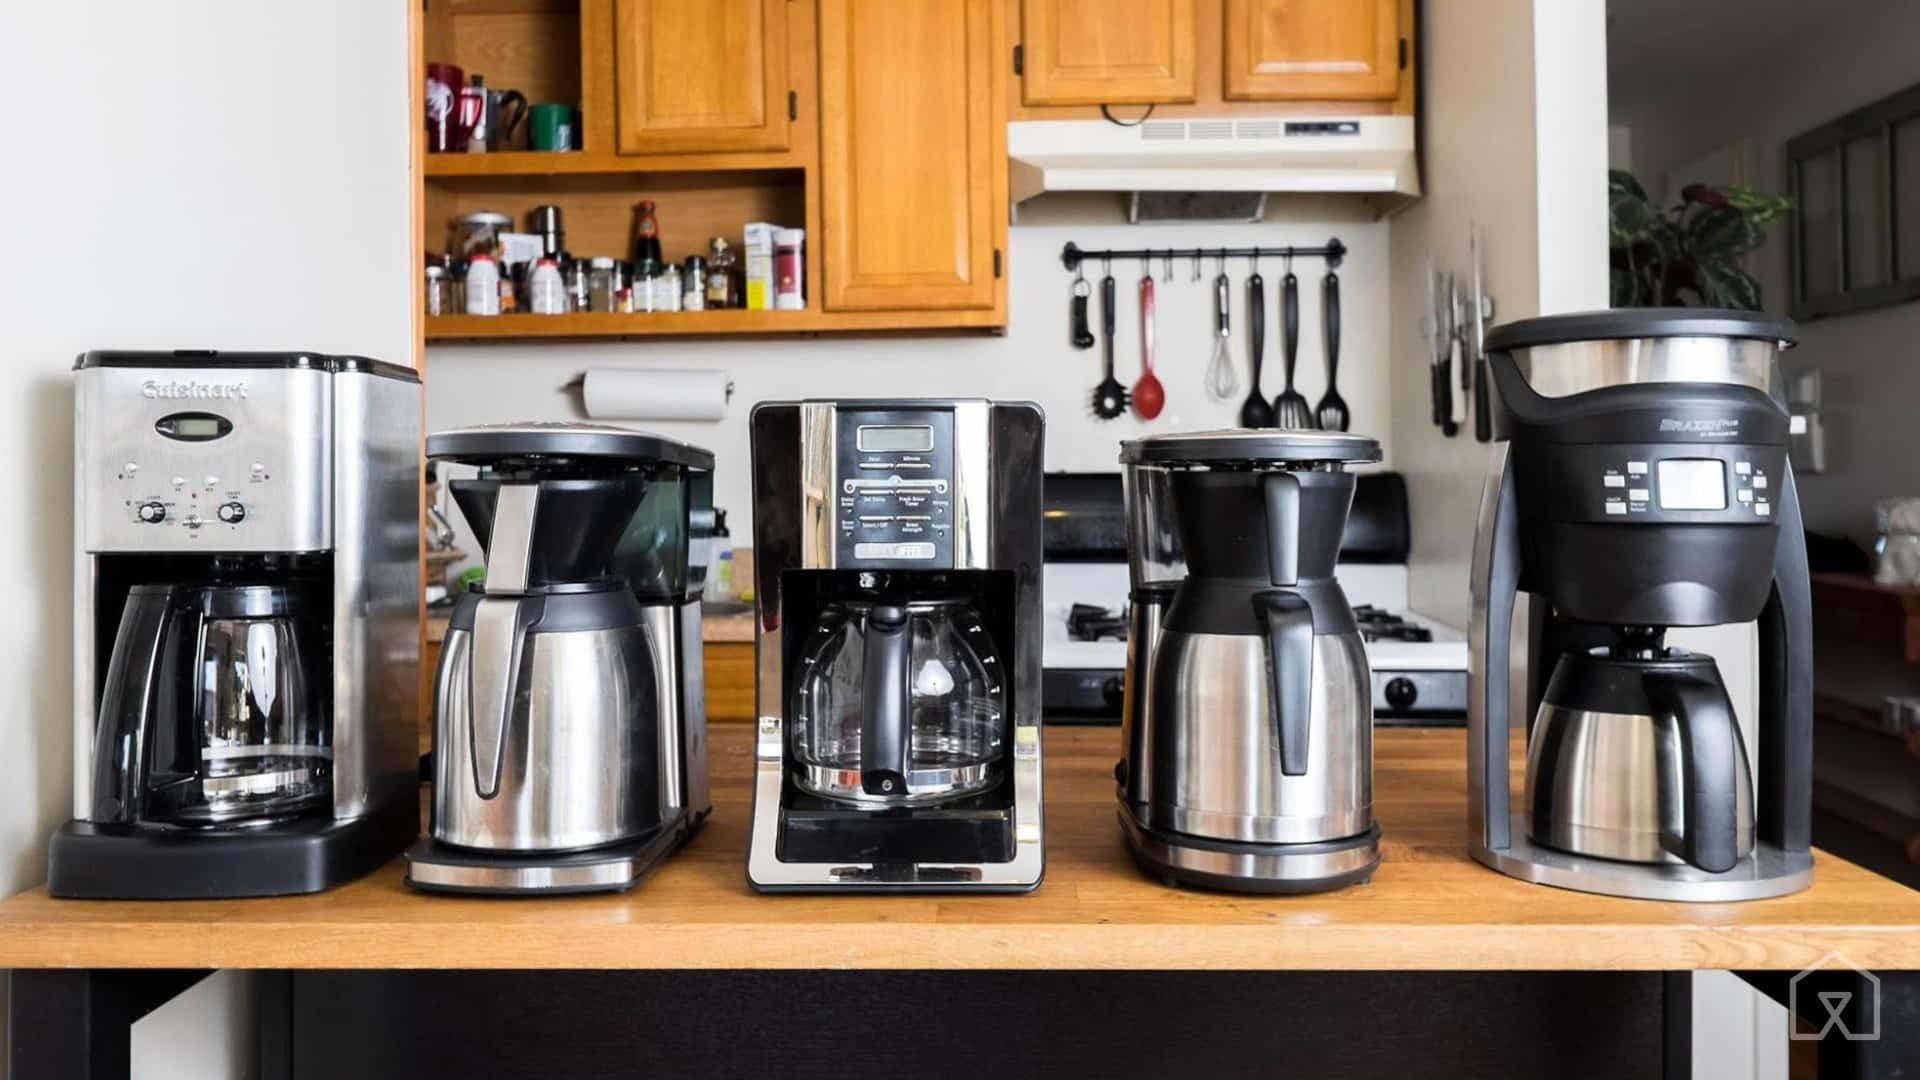 guide to finding the best coffee makers with grinder 2018 seek best. Black Bedroom Furniture Sets. Home Design Ideas